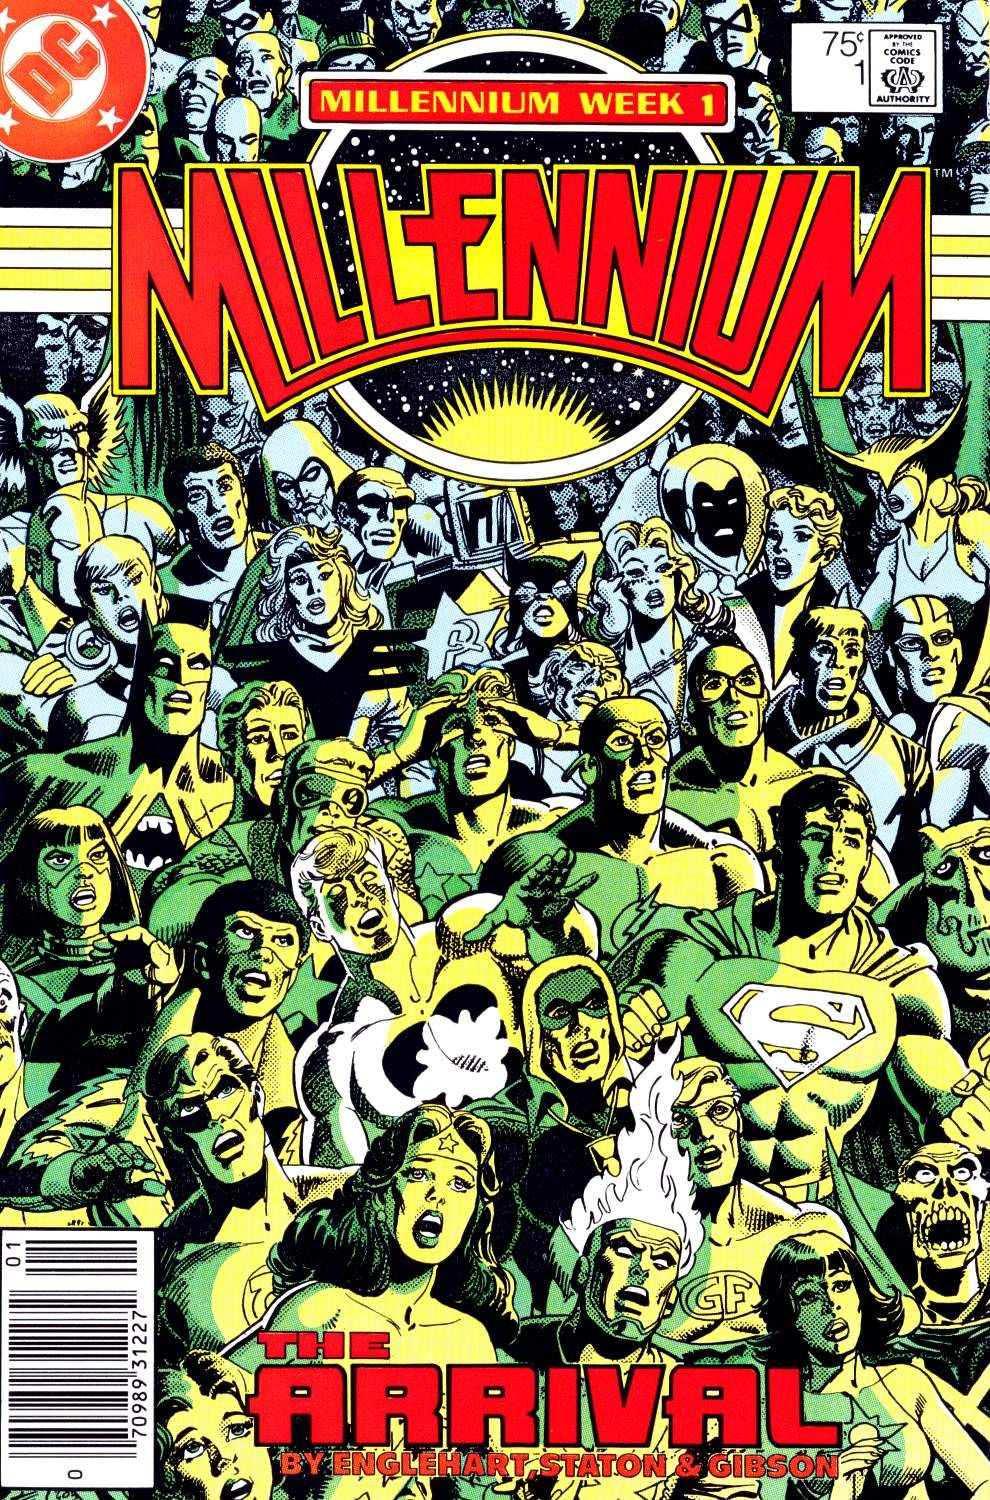 Millennium N°1 (January 1988) Cover by Joe Staton and